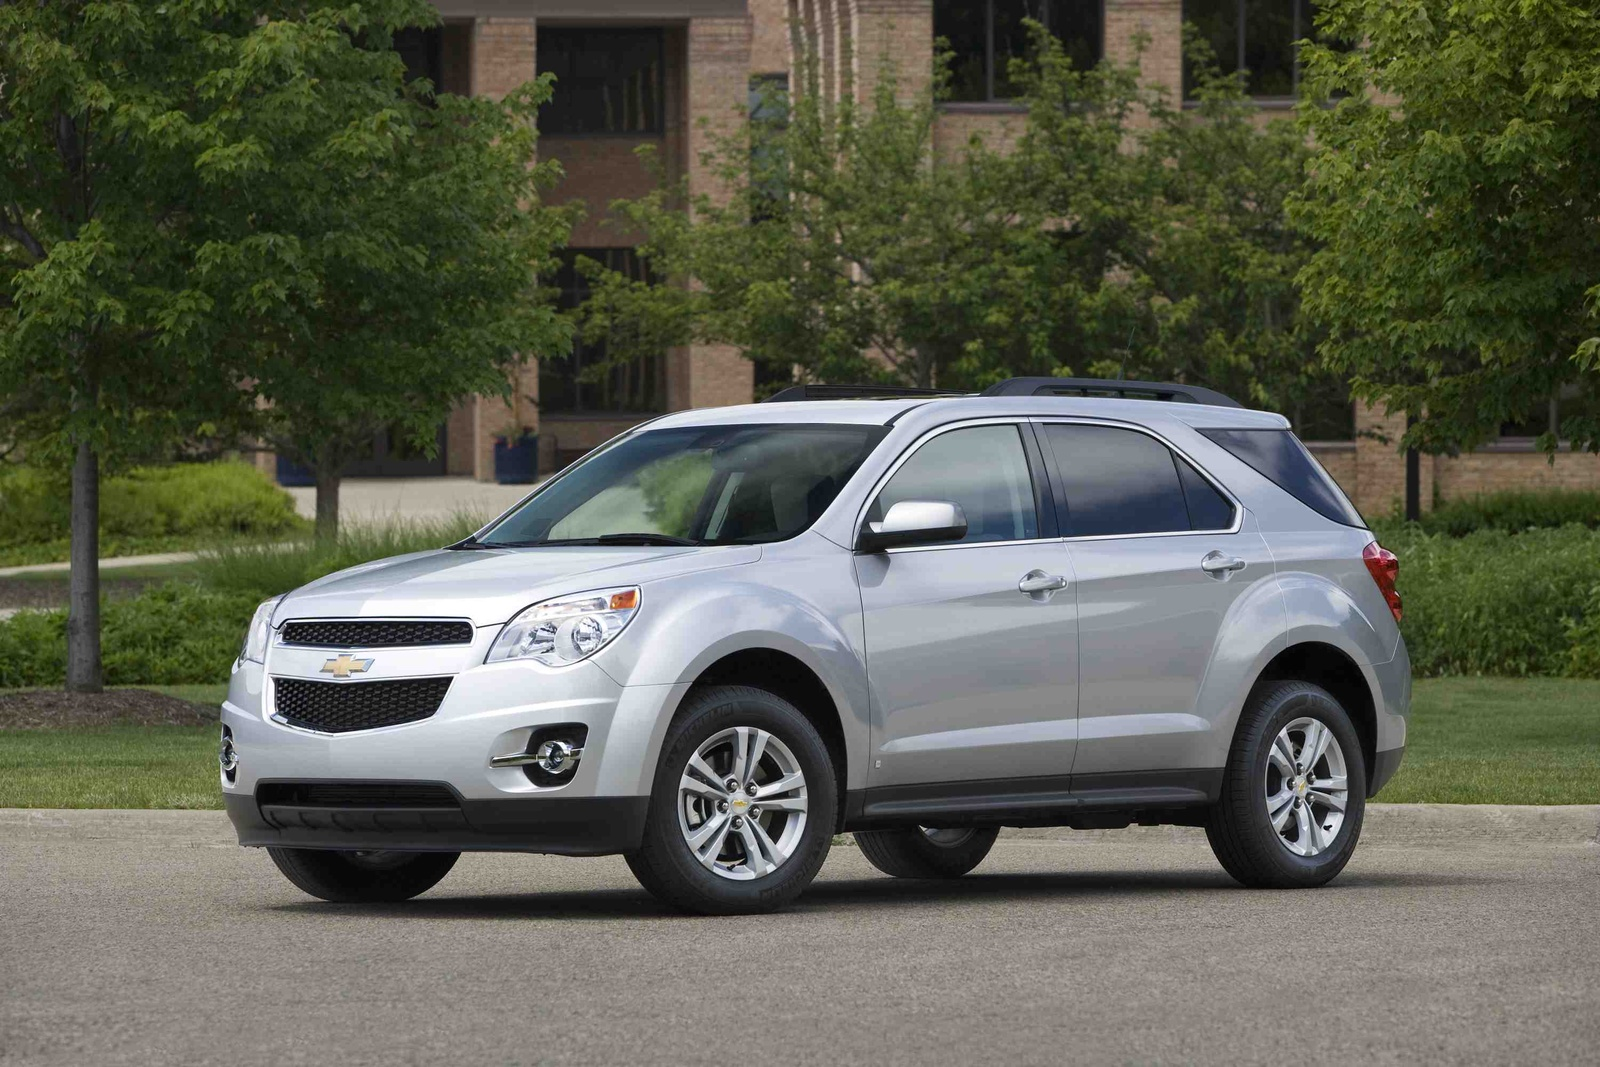 chevrolet equinox images #8